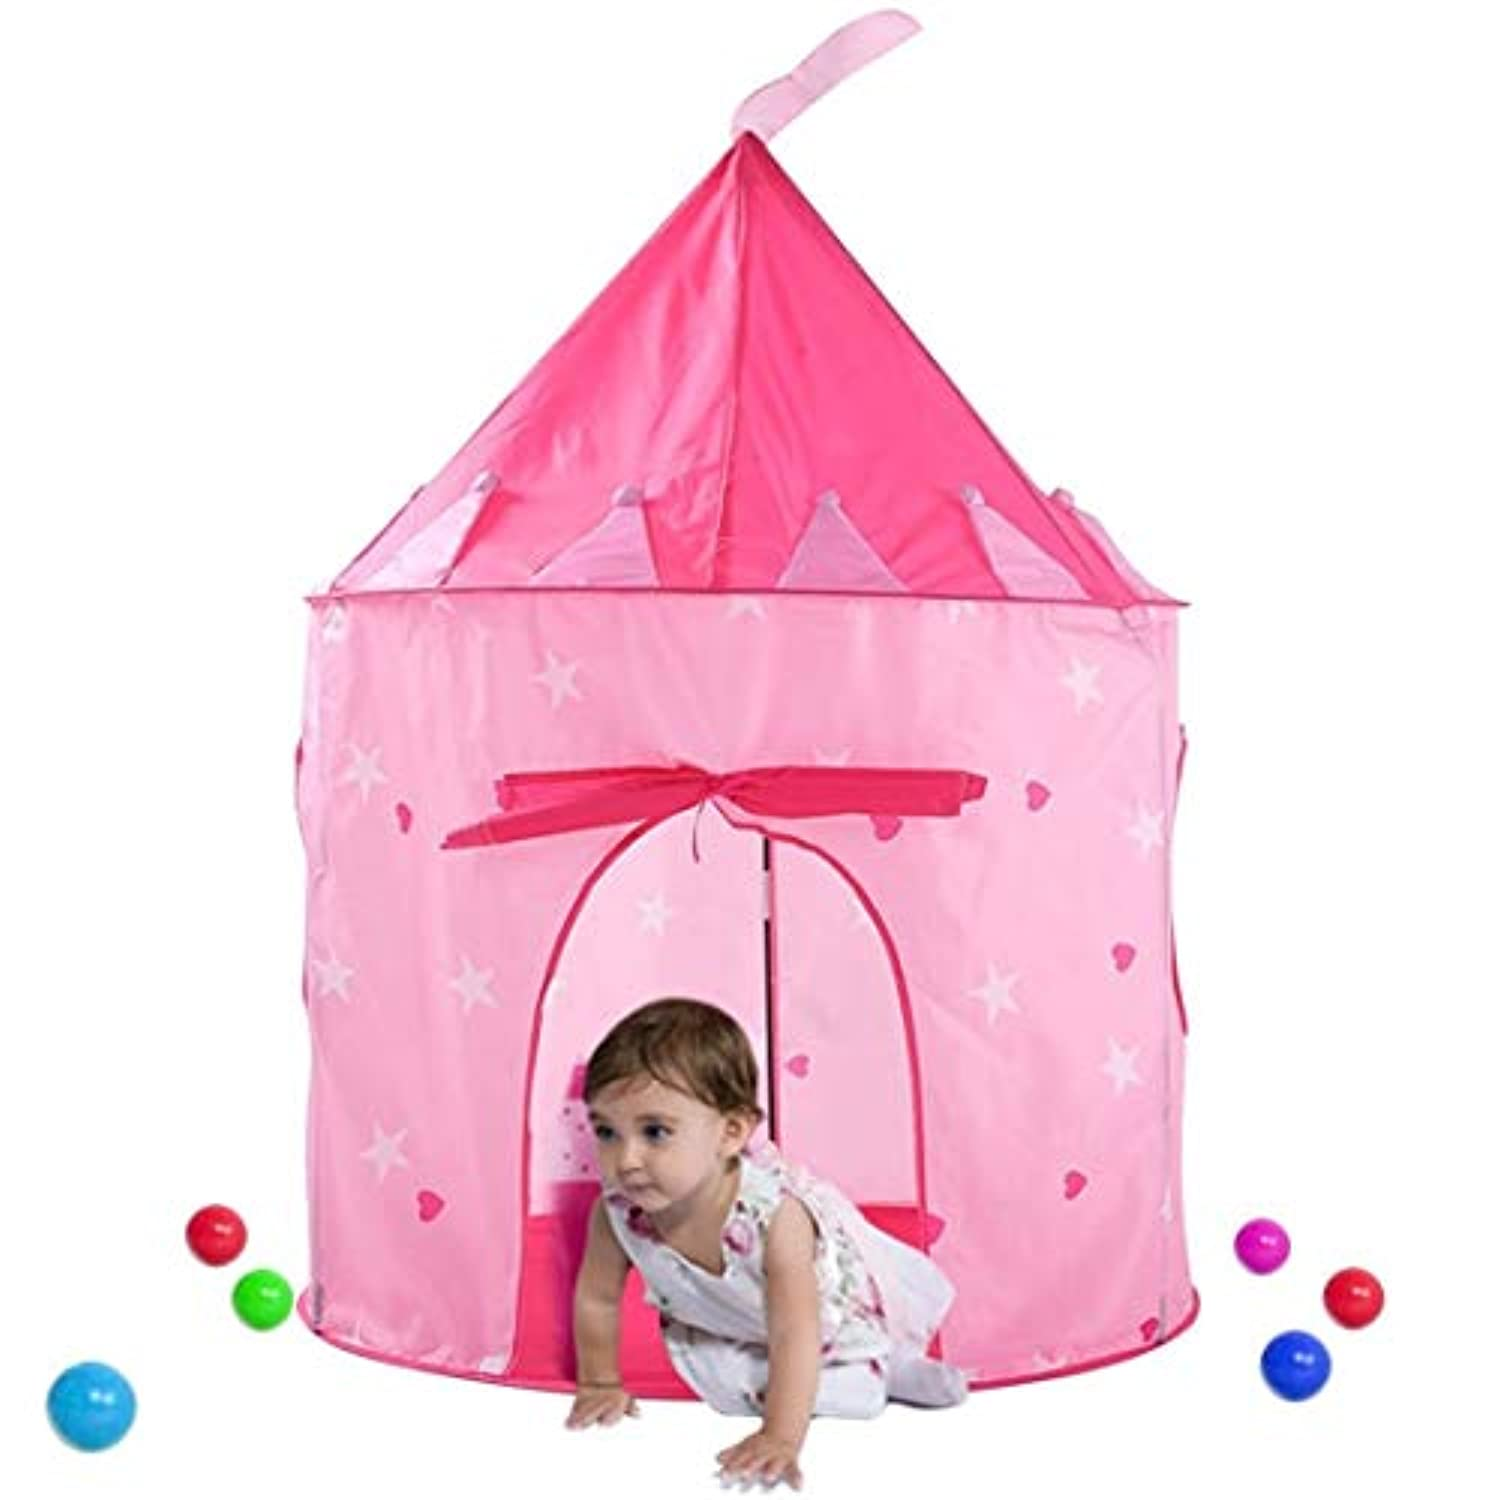 vakker Castle Play Tent Playhouse For Boys Girls Kids、インスタントPop Up、丈夫ポータブルwith Carryingバッグ ピンク 28-292